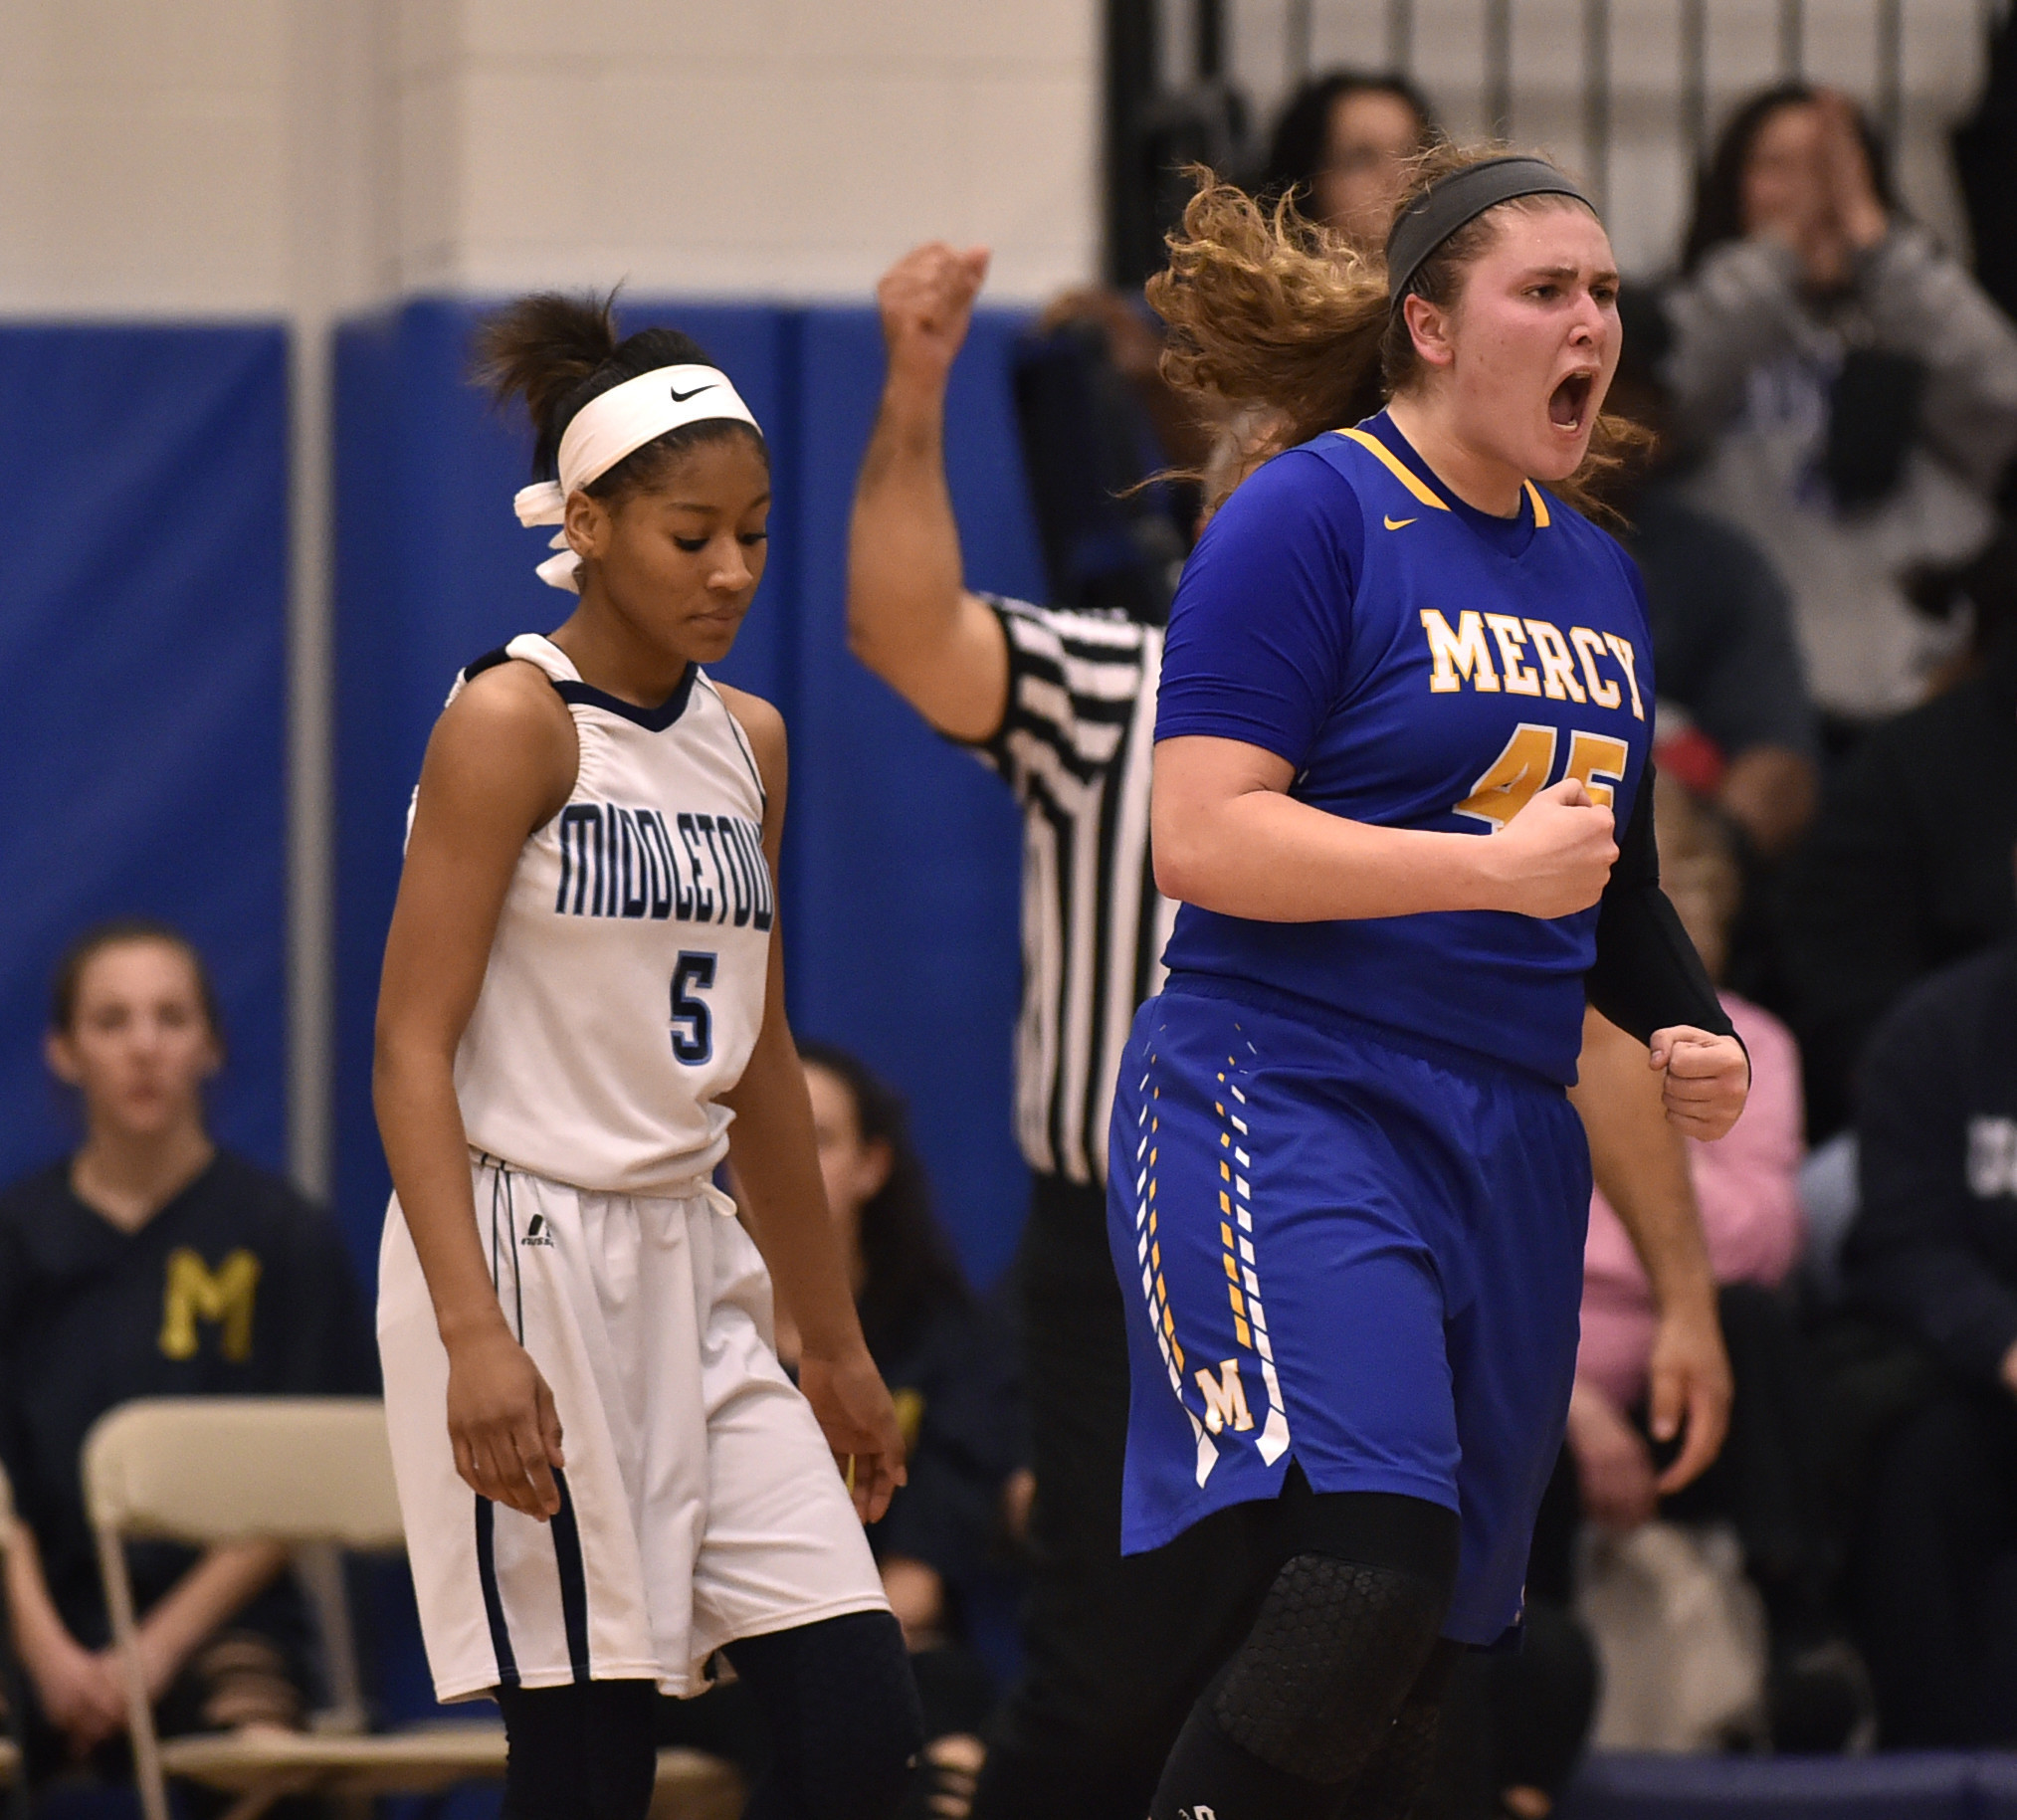 middletown girls Get the latest middletown high school girls basketball news, rankings, schedules,  stats, scores, results, athletes info, and more at pennlivecom.